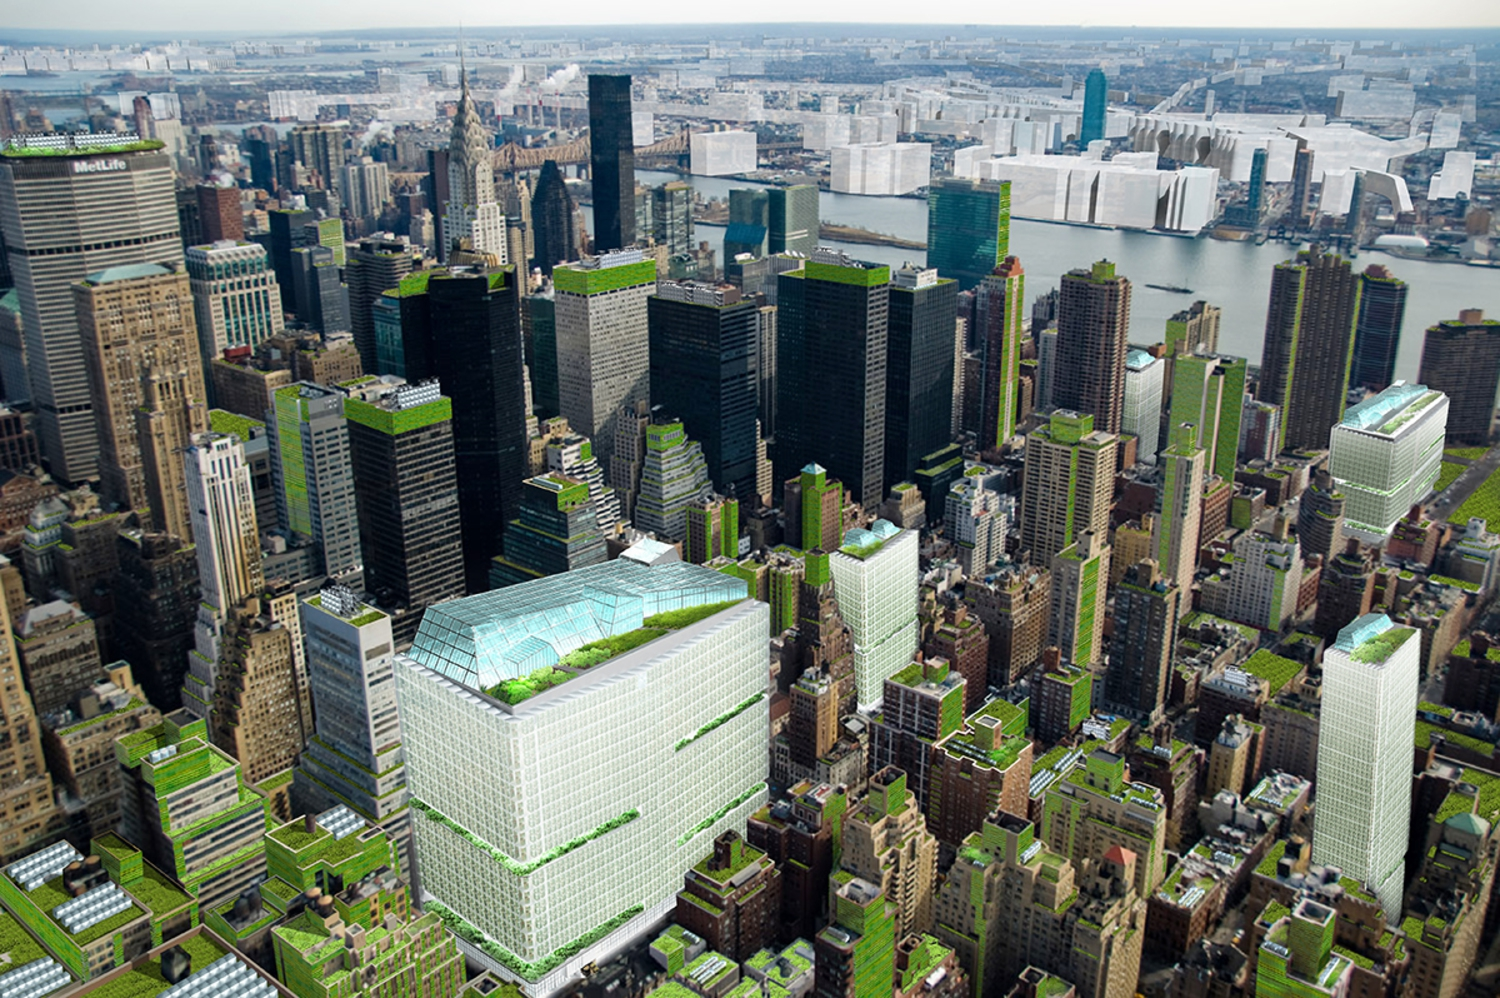 Vertical farms in mid-town Manhattan to produce food for 30,000 people.